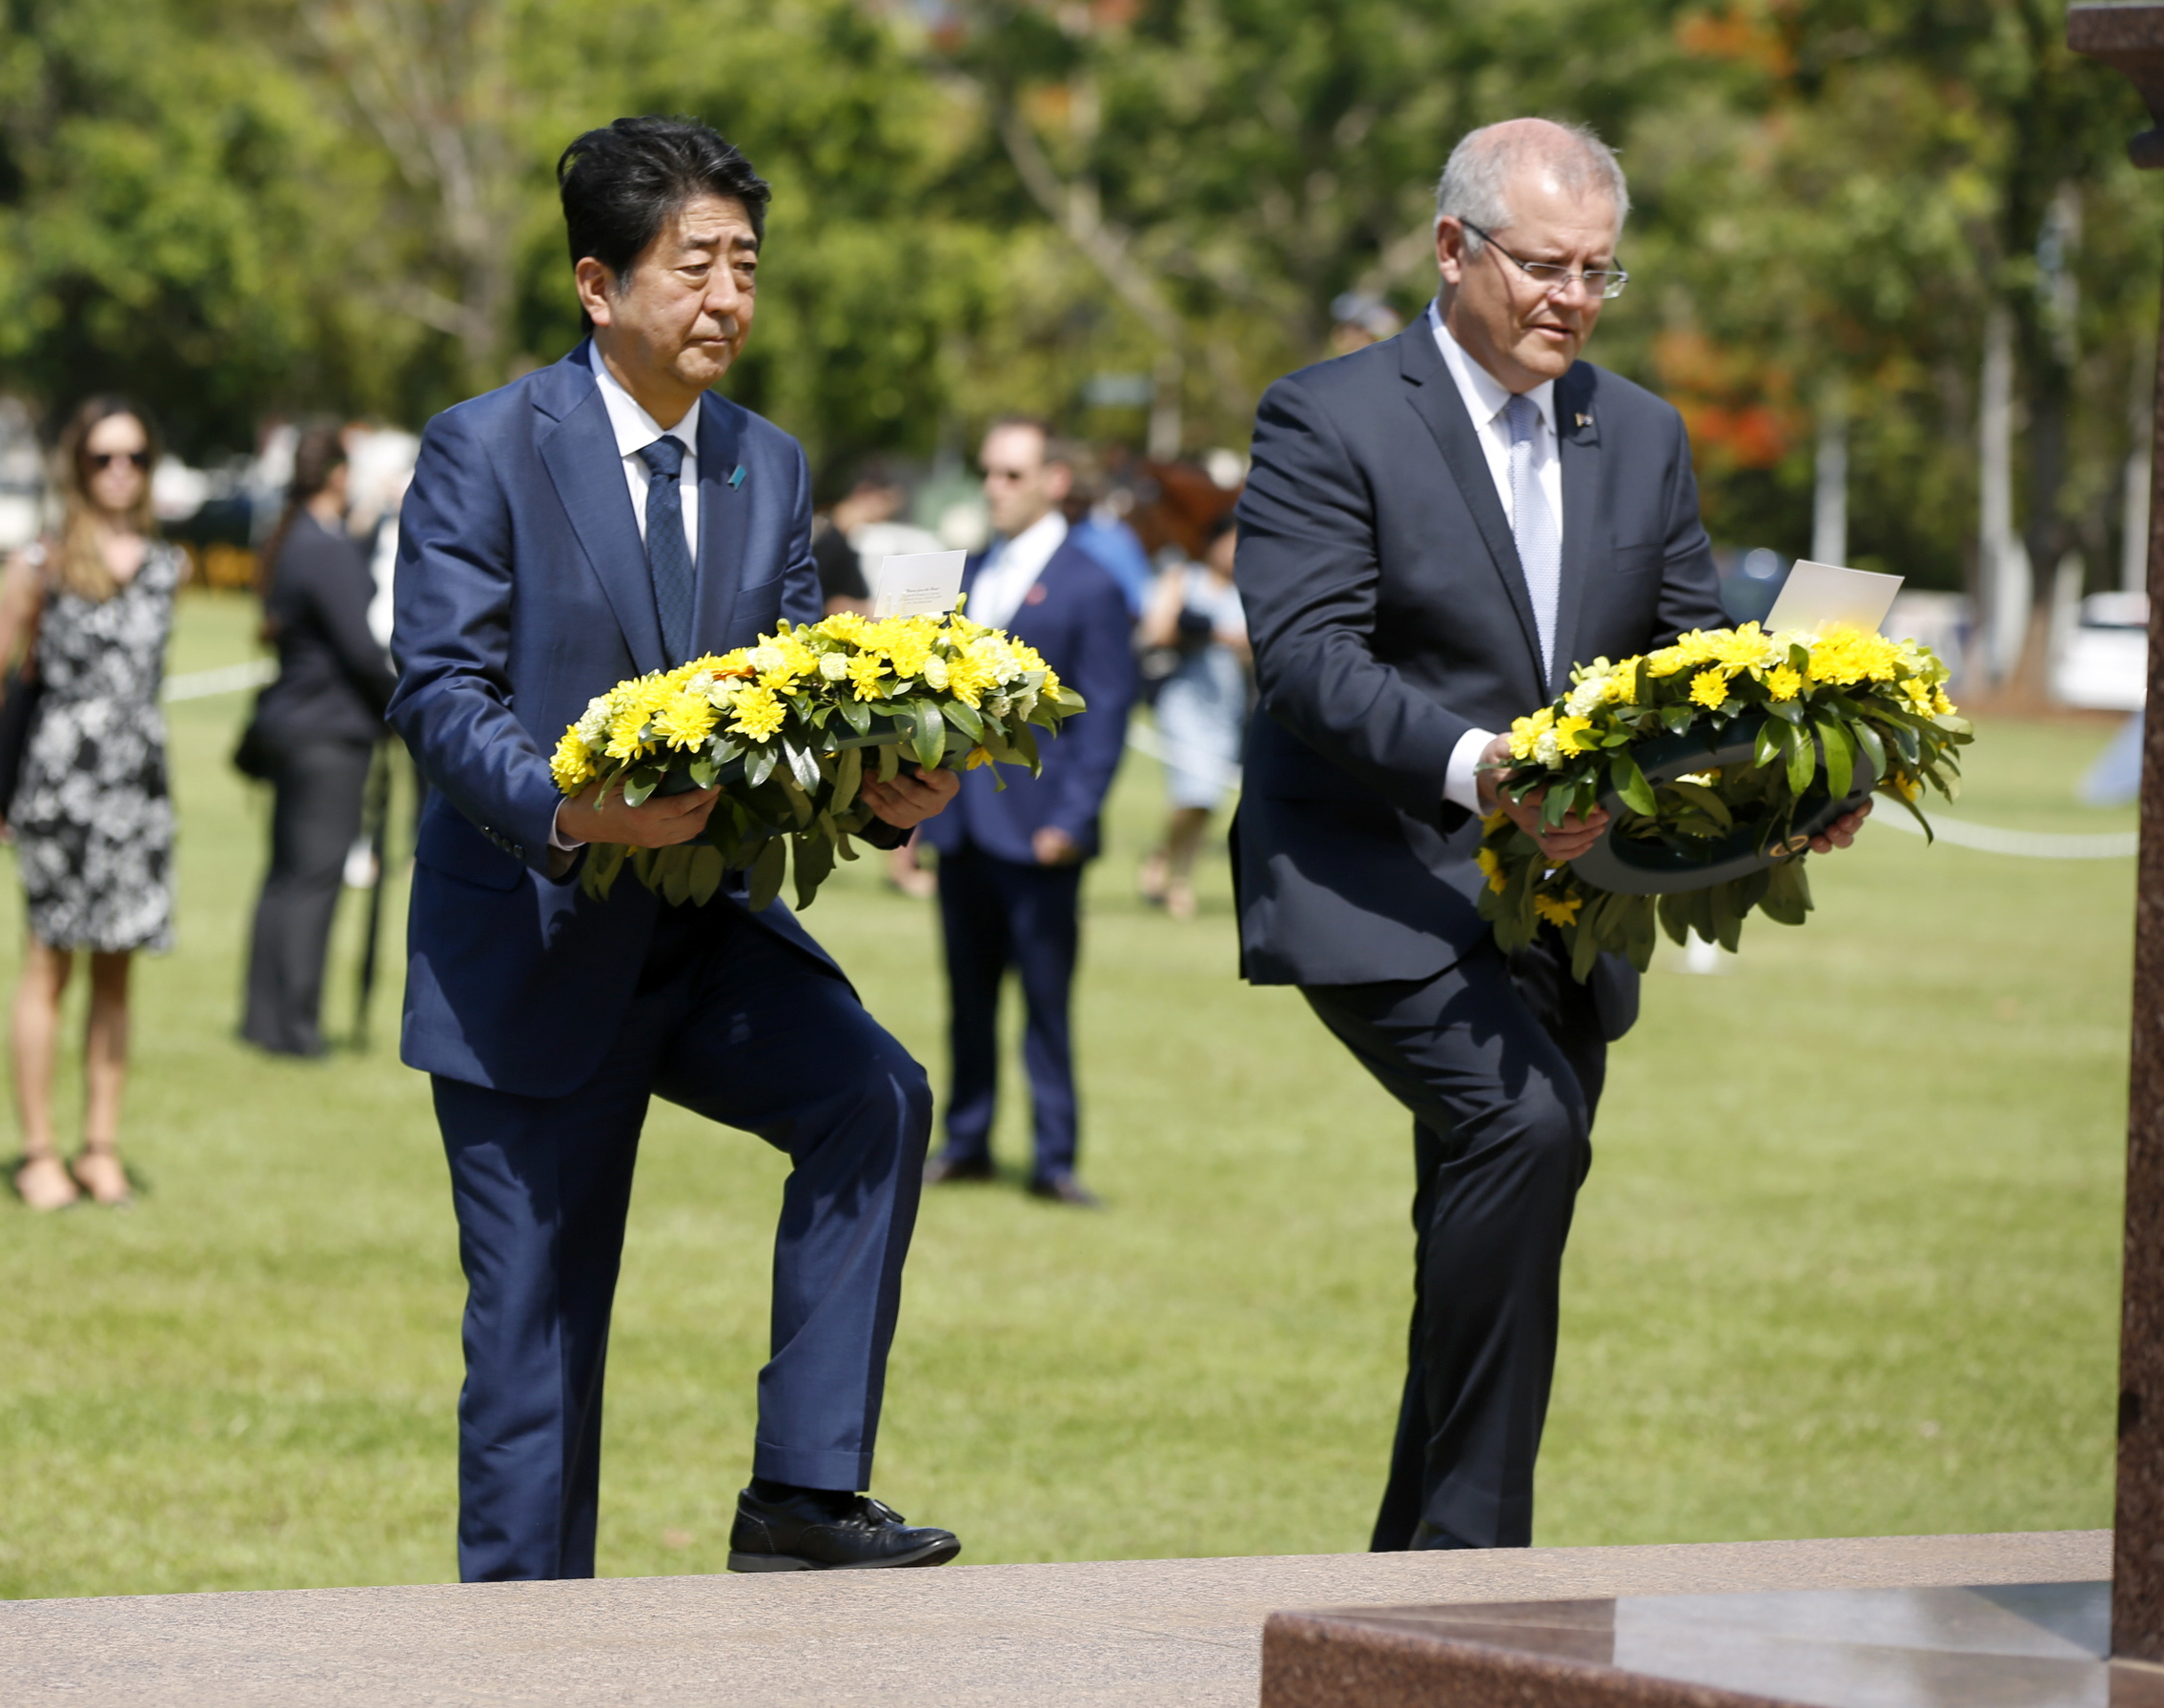 Japan's PM honours those lost in Darwin bombing